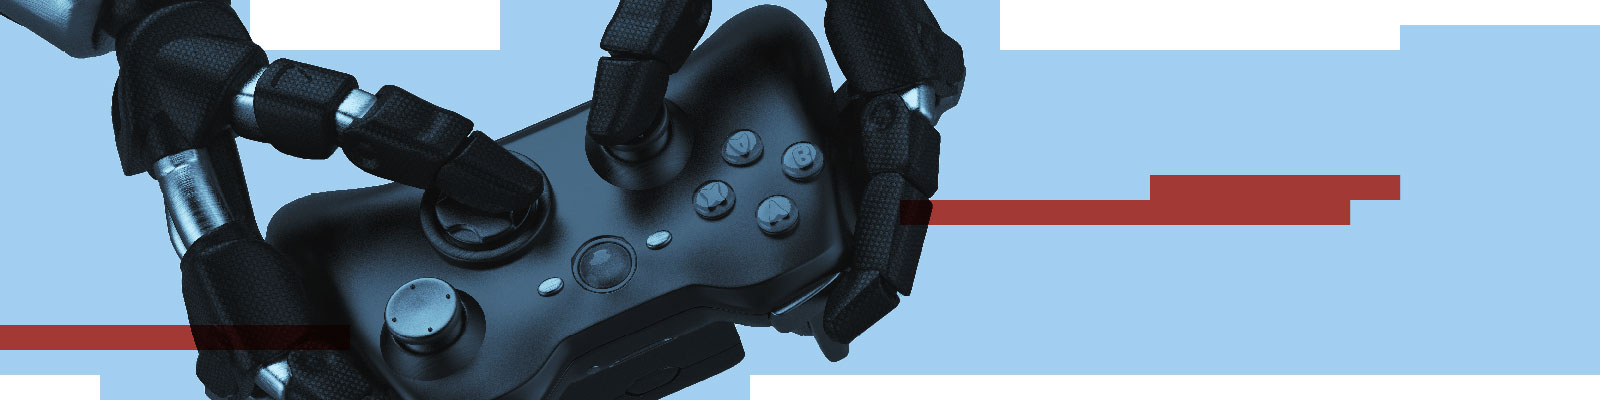 future of work robot with gamepad